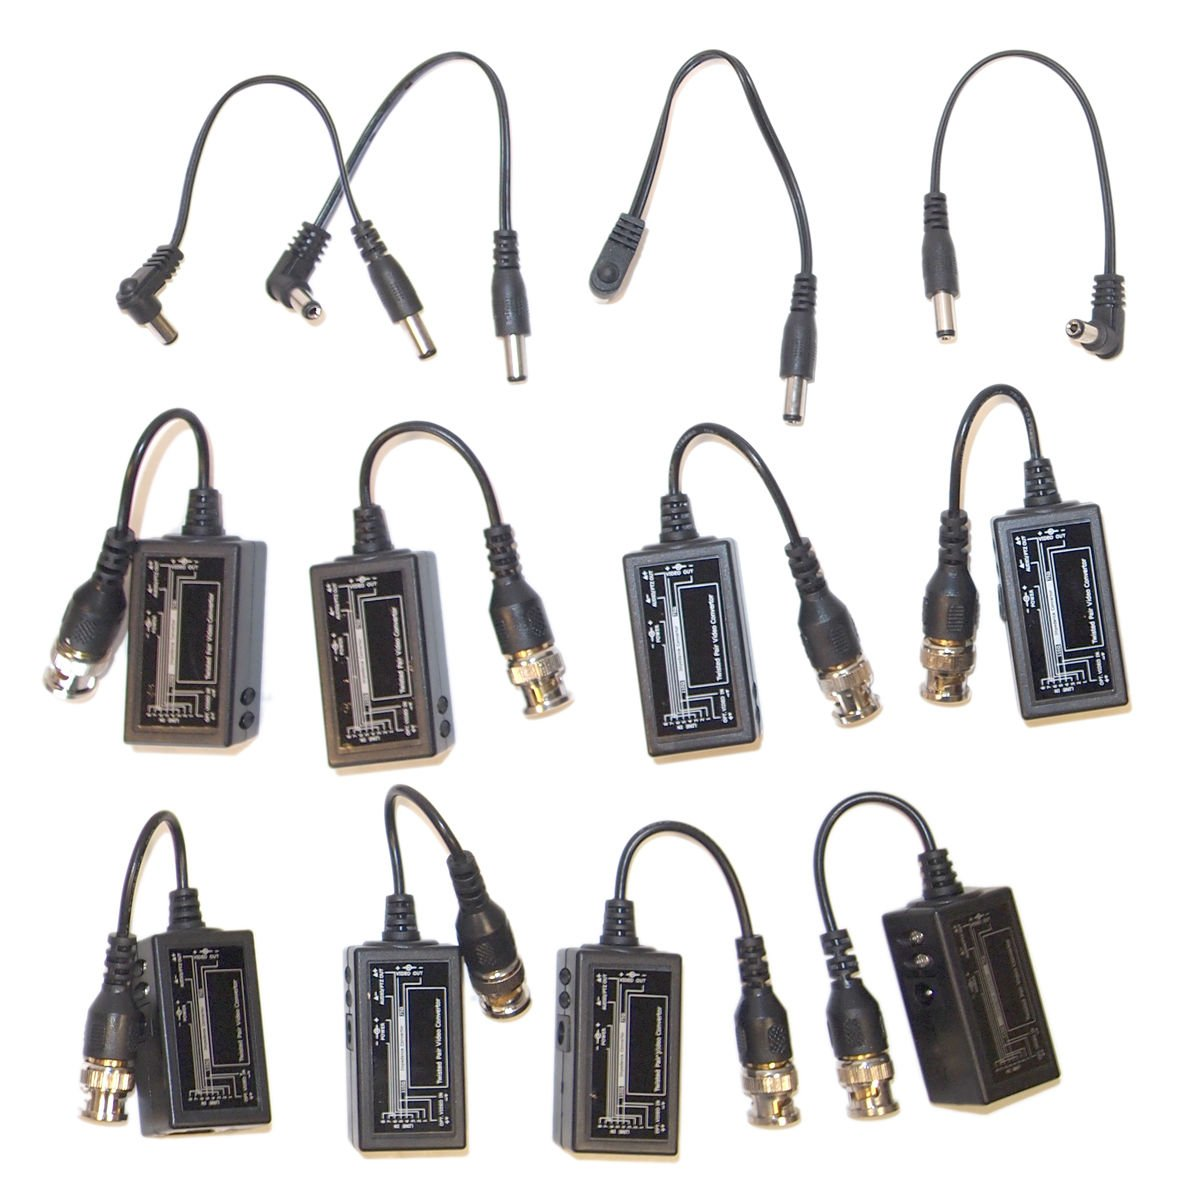 Evertech 4 Pairs (8 pcs) BNC to RJ45 Video Balun CCTV PTZ Camera with Power Connector by Evertech